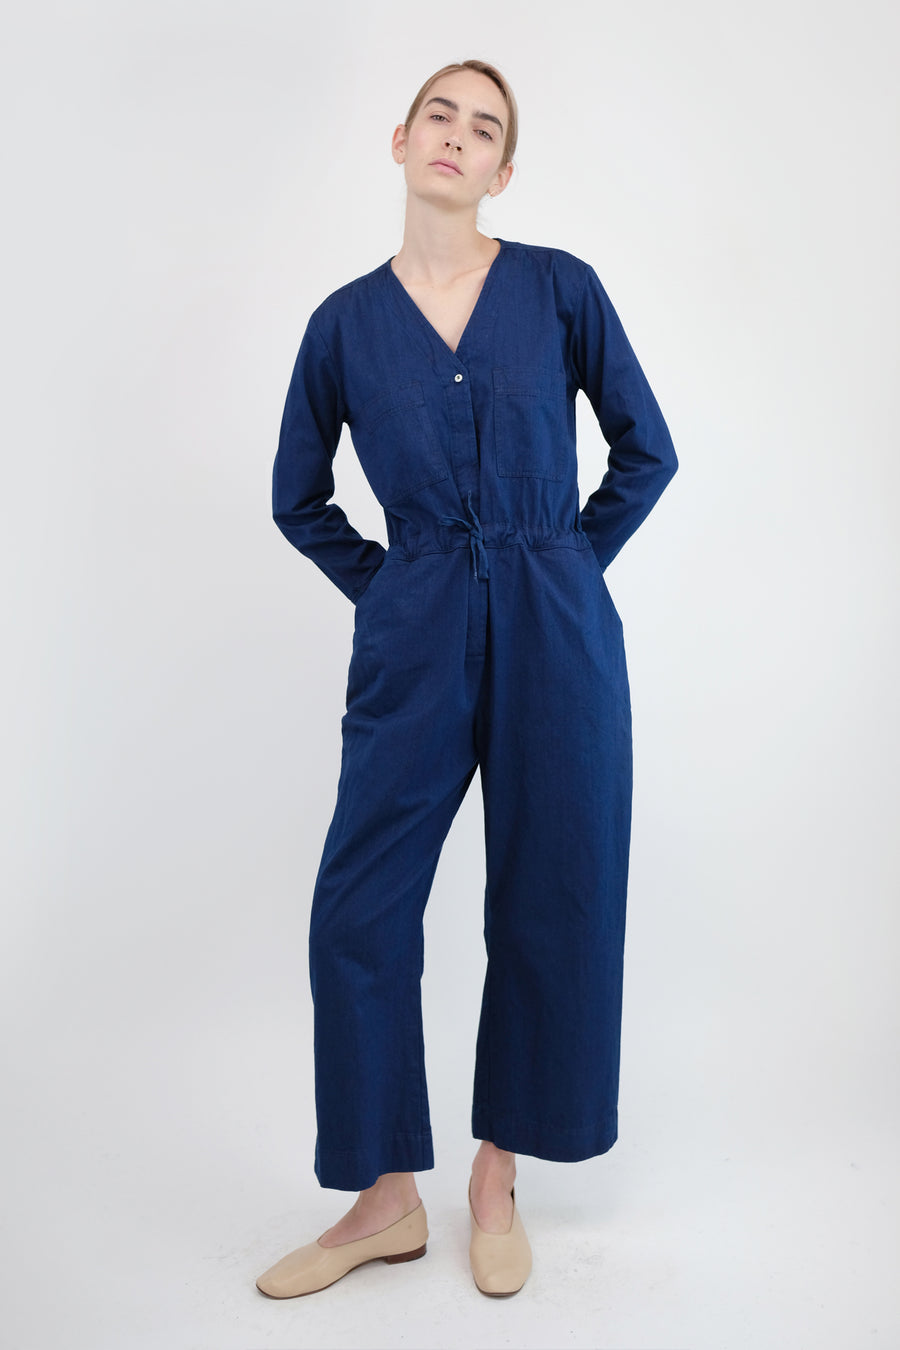 True Blue Denim Tie Coverall